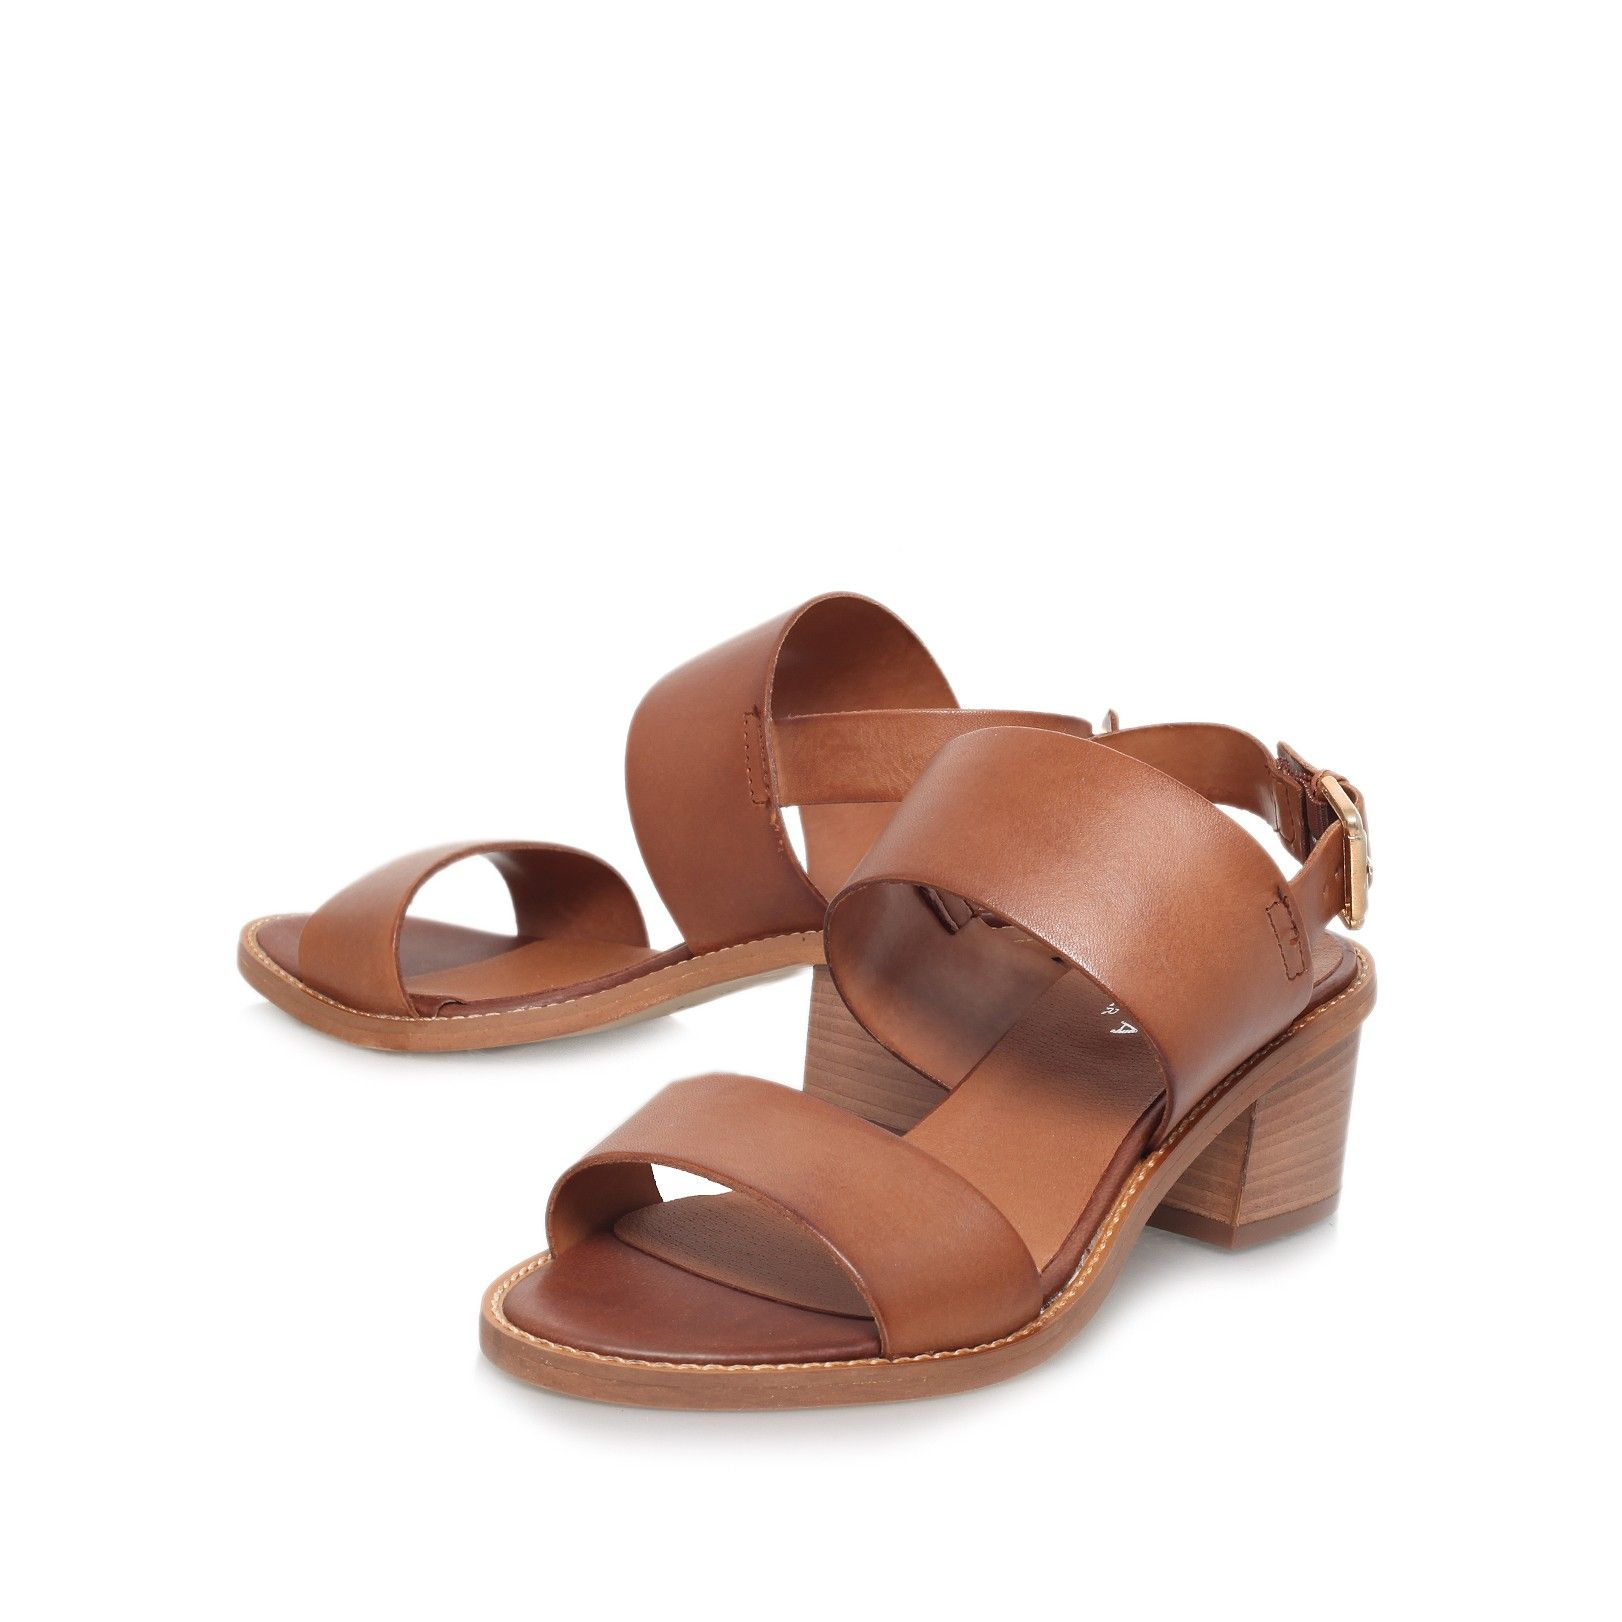 15092cce9d0 kimberly tan mid heel sandals from Carvela Kurt Geiger